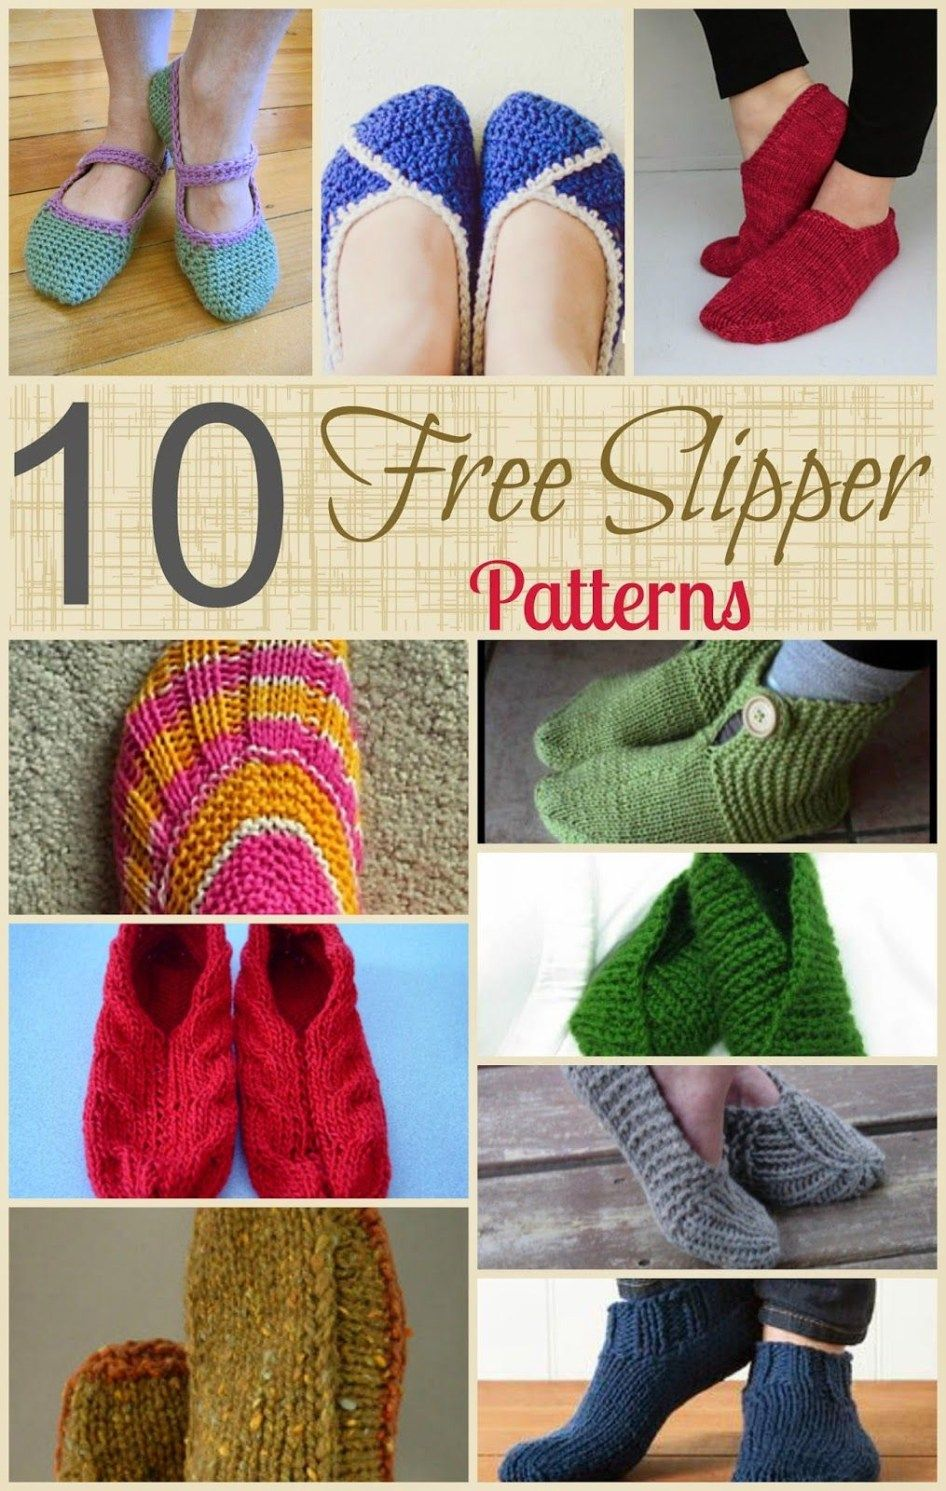 30 Amazing Image of Knitting Patterns Easy Christmas Gifts ...